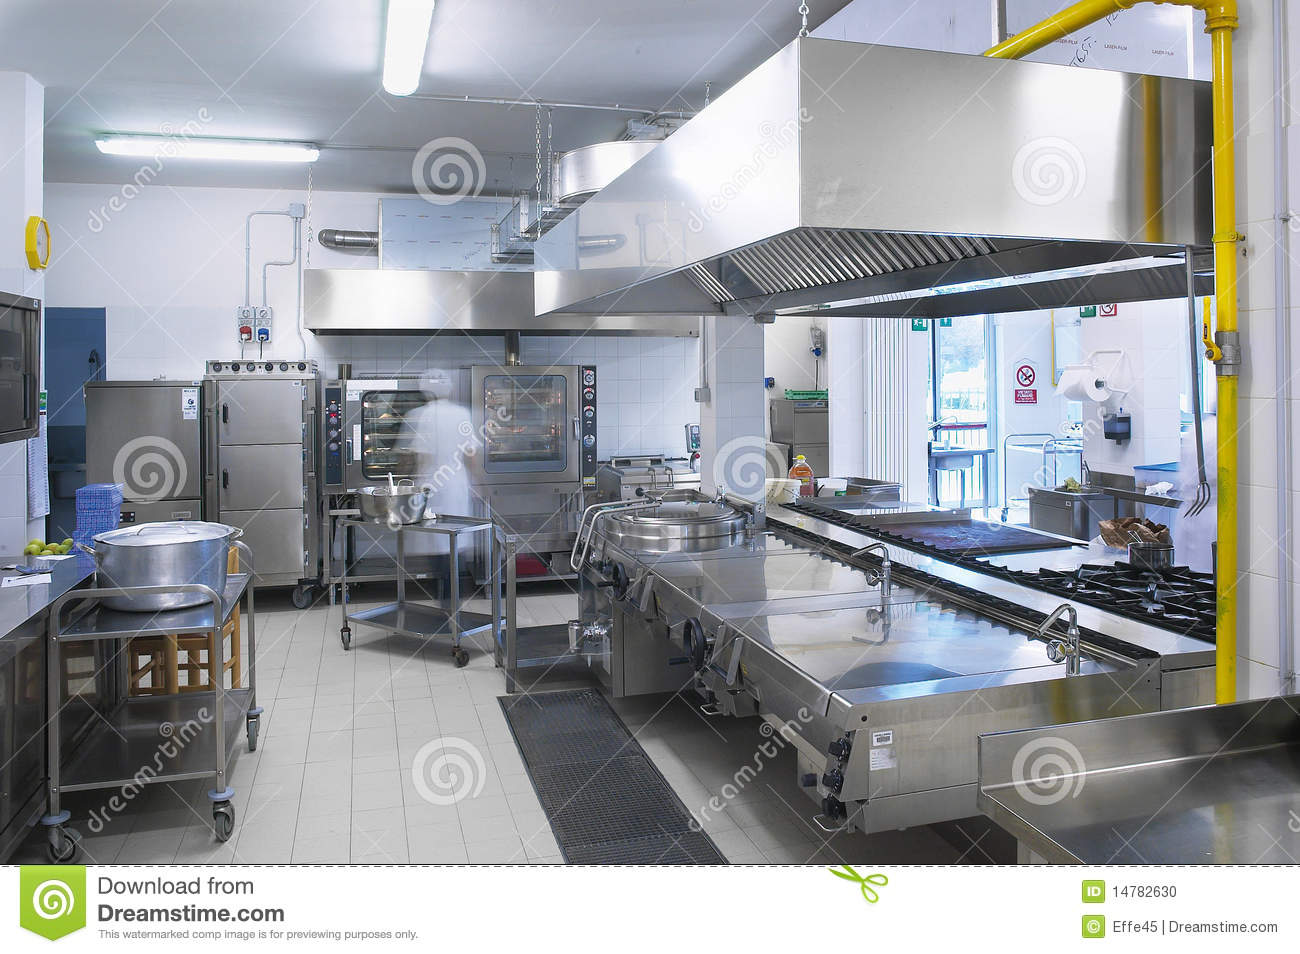 Une cuisine d 39 un restaurant photo stock image 14782630 for Amnagement d une cuisine